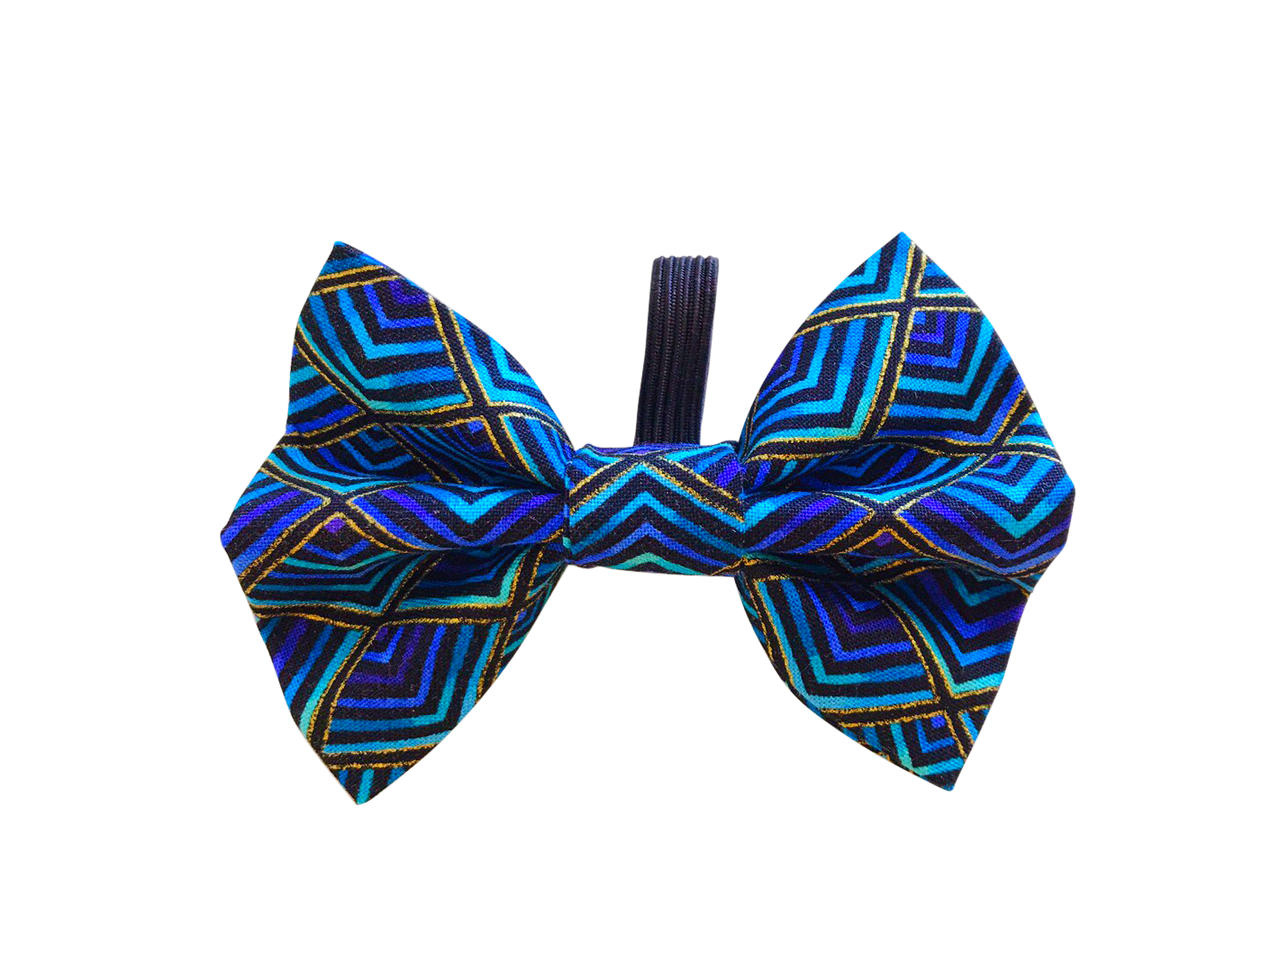 Mermaid's Tail Bow Tie ©